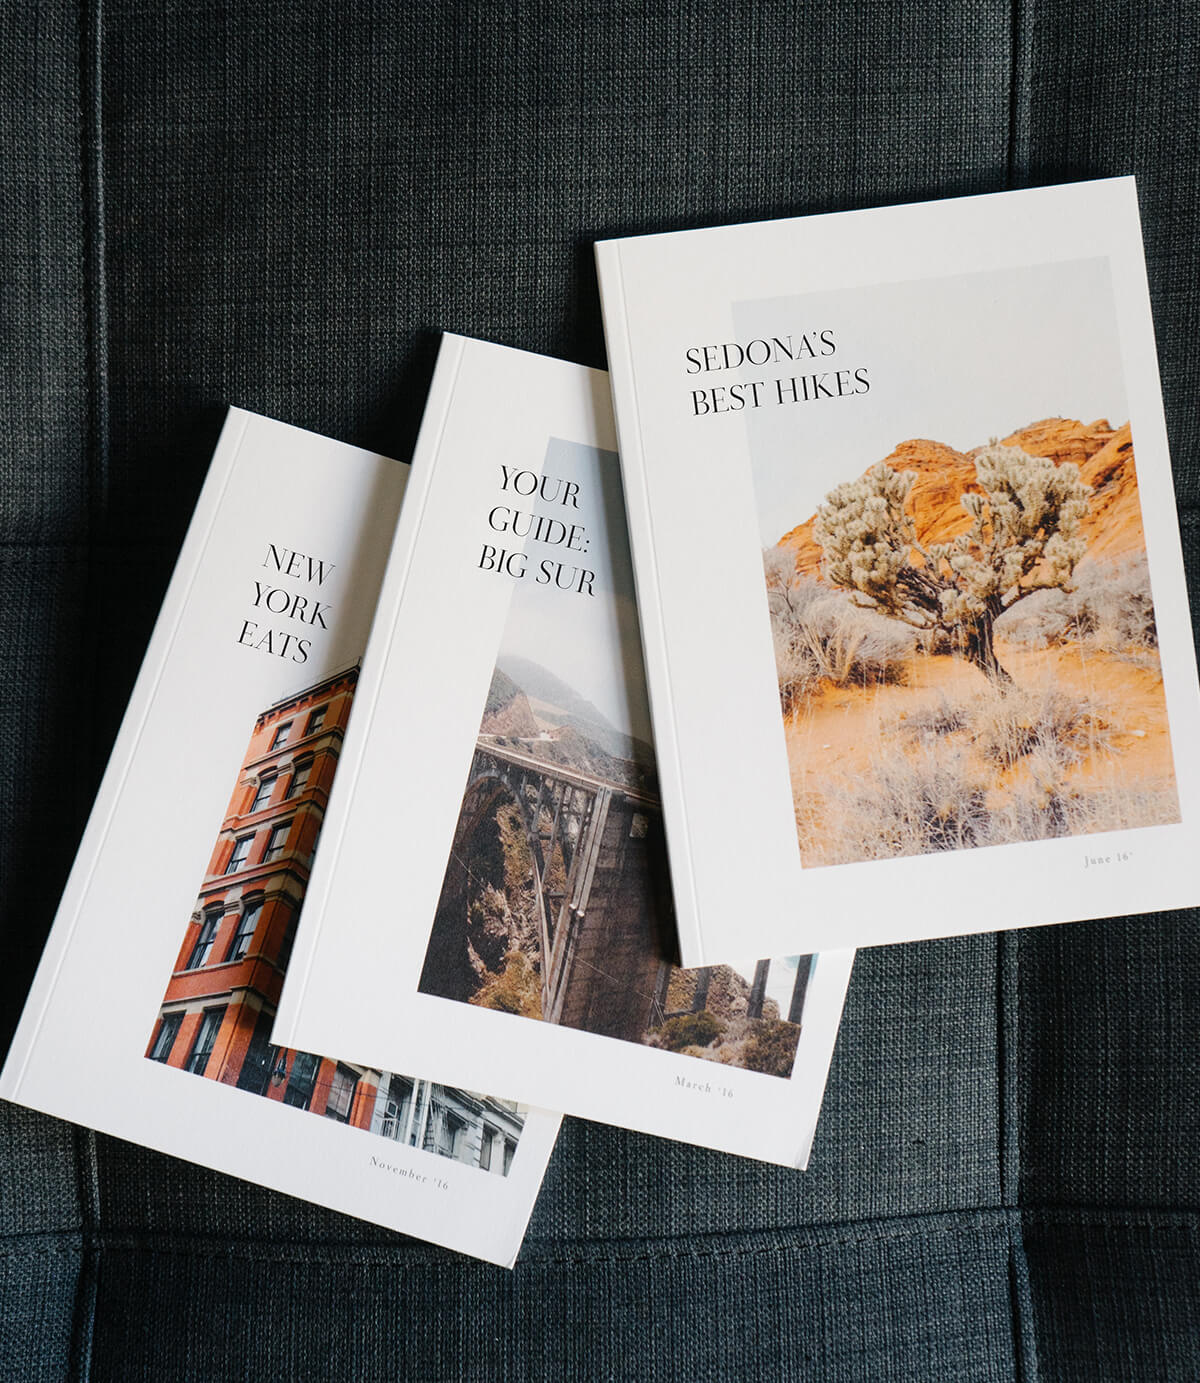 Artifact Uprising Softcover Photo Book being used as city guide books for an Airbnb